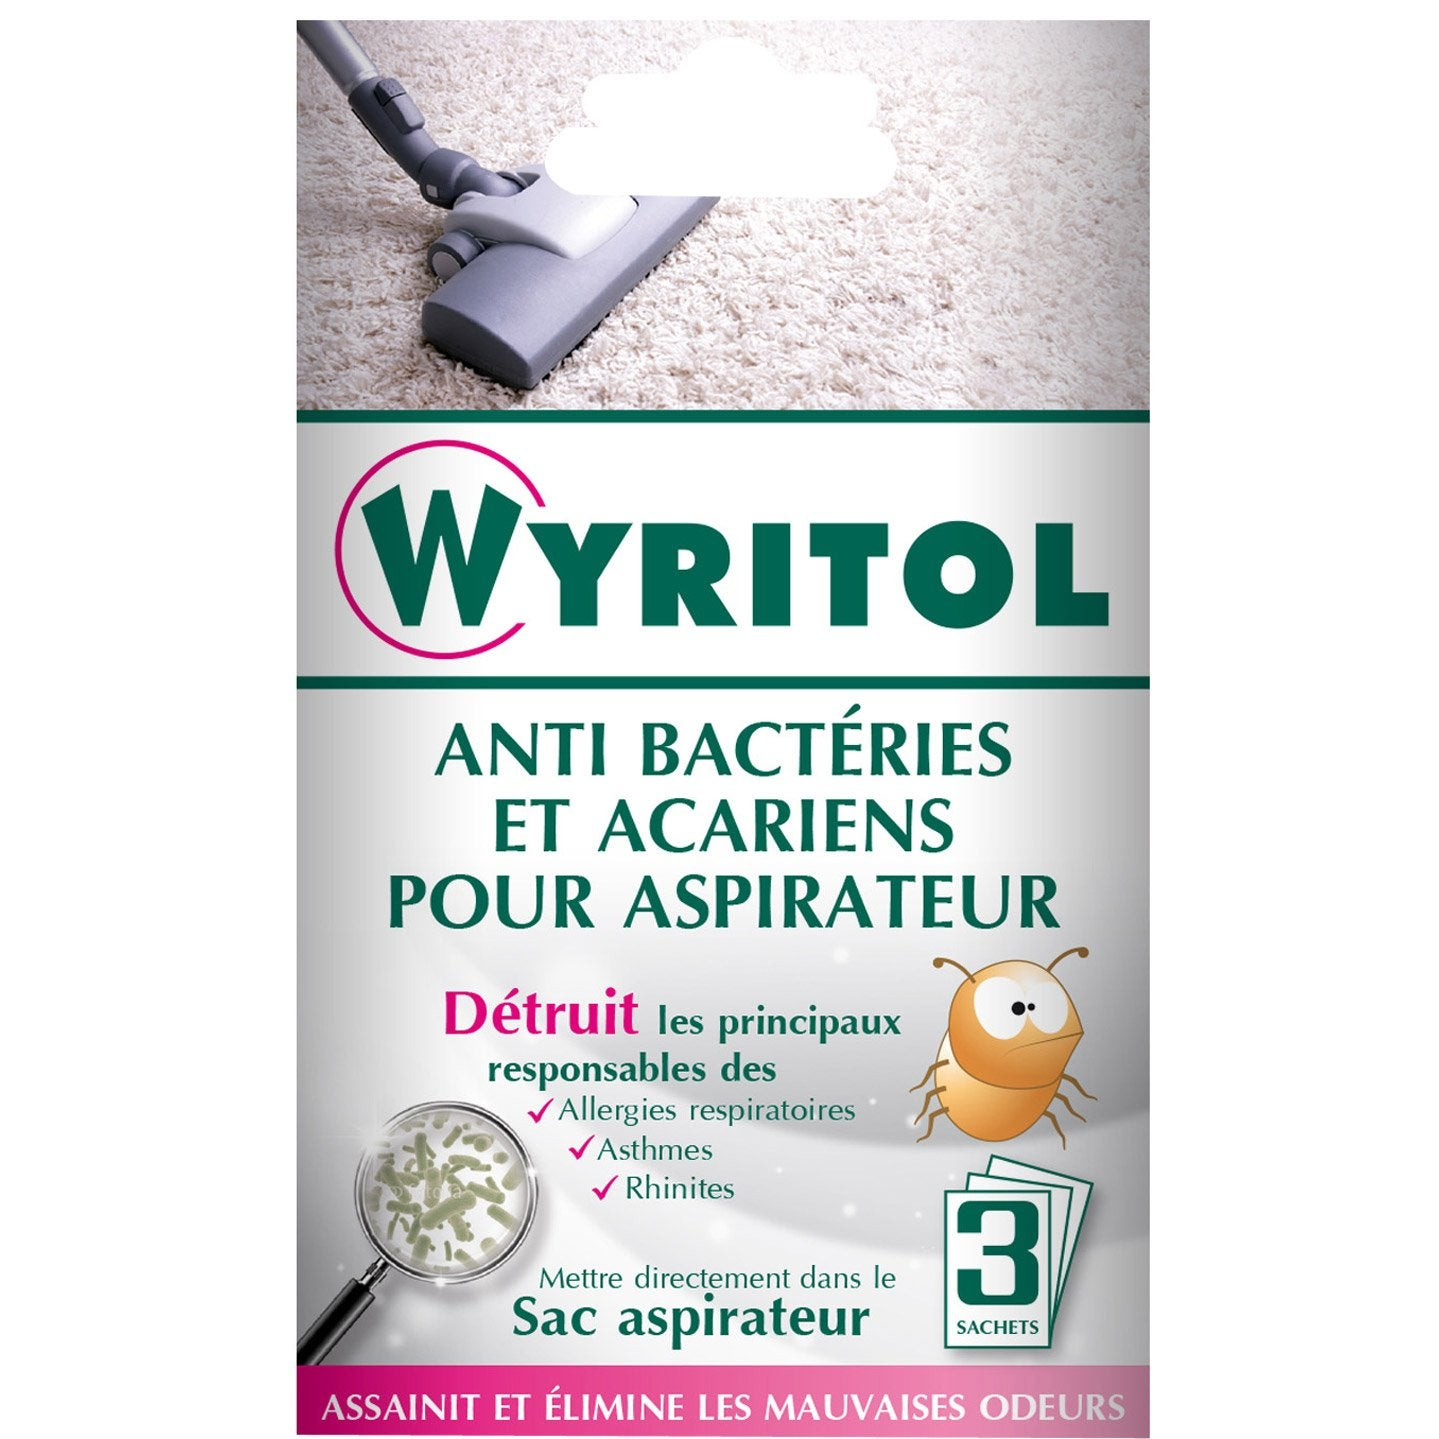 D sinfectant anti bact rien aspirateur wyritol 3 x 10 g leroy merlin for Produit anti punaise de lit leroy merlin